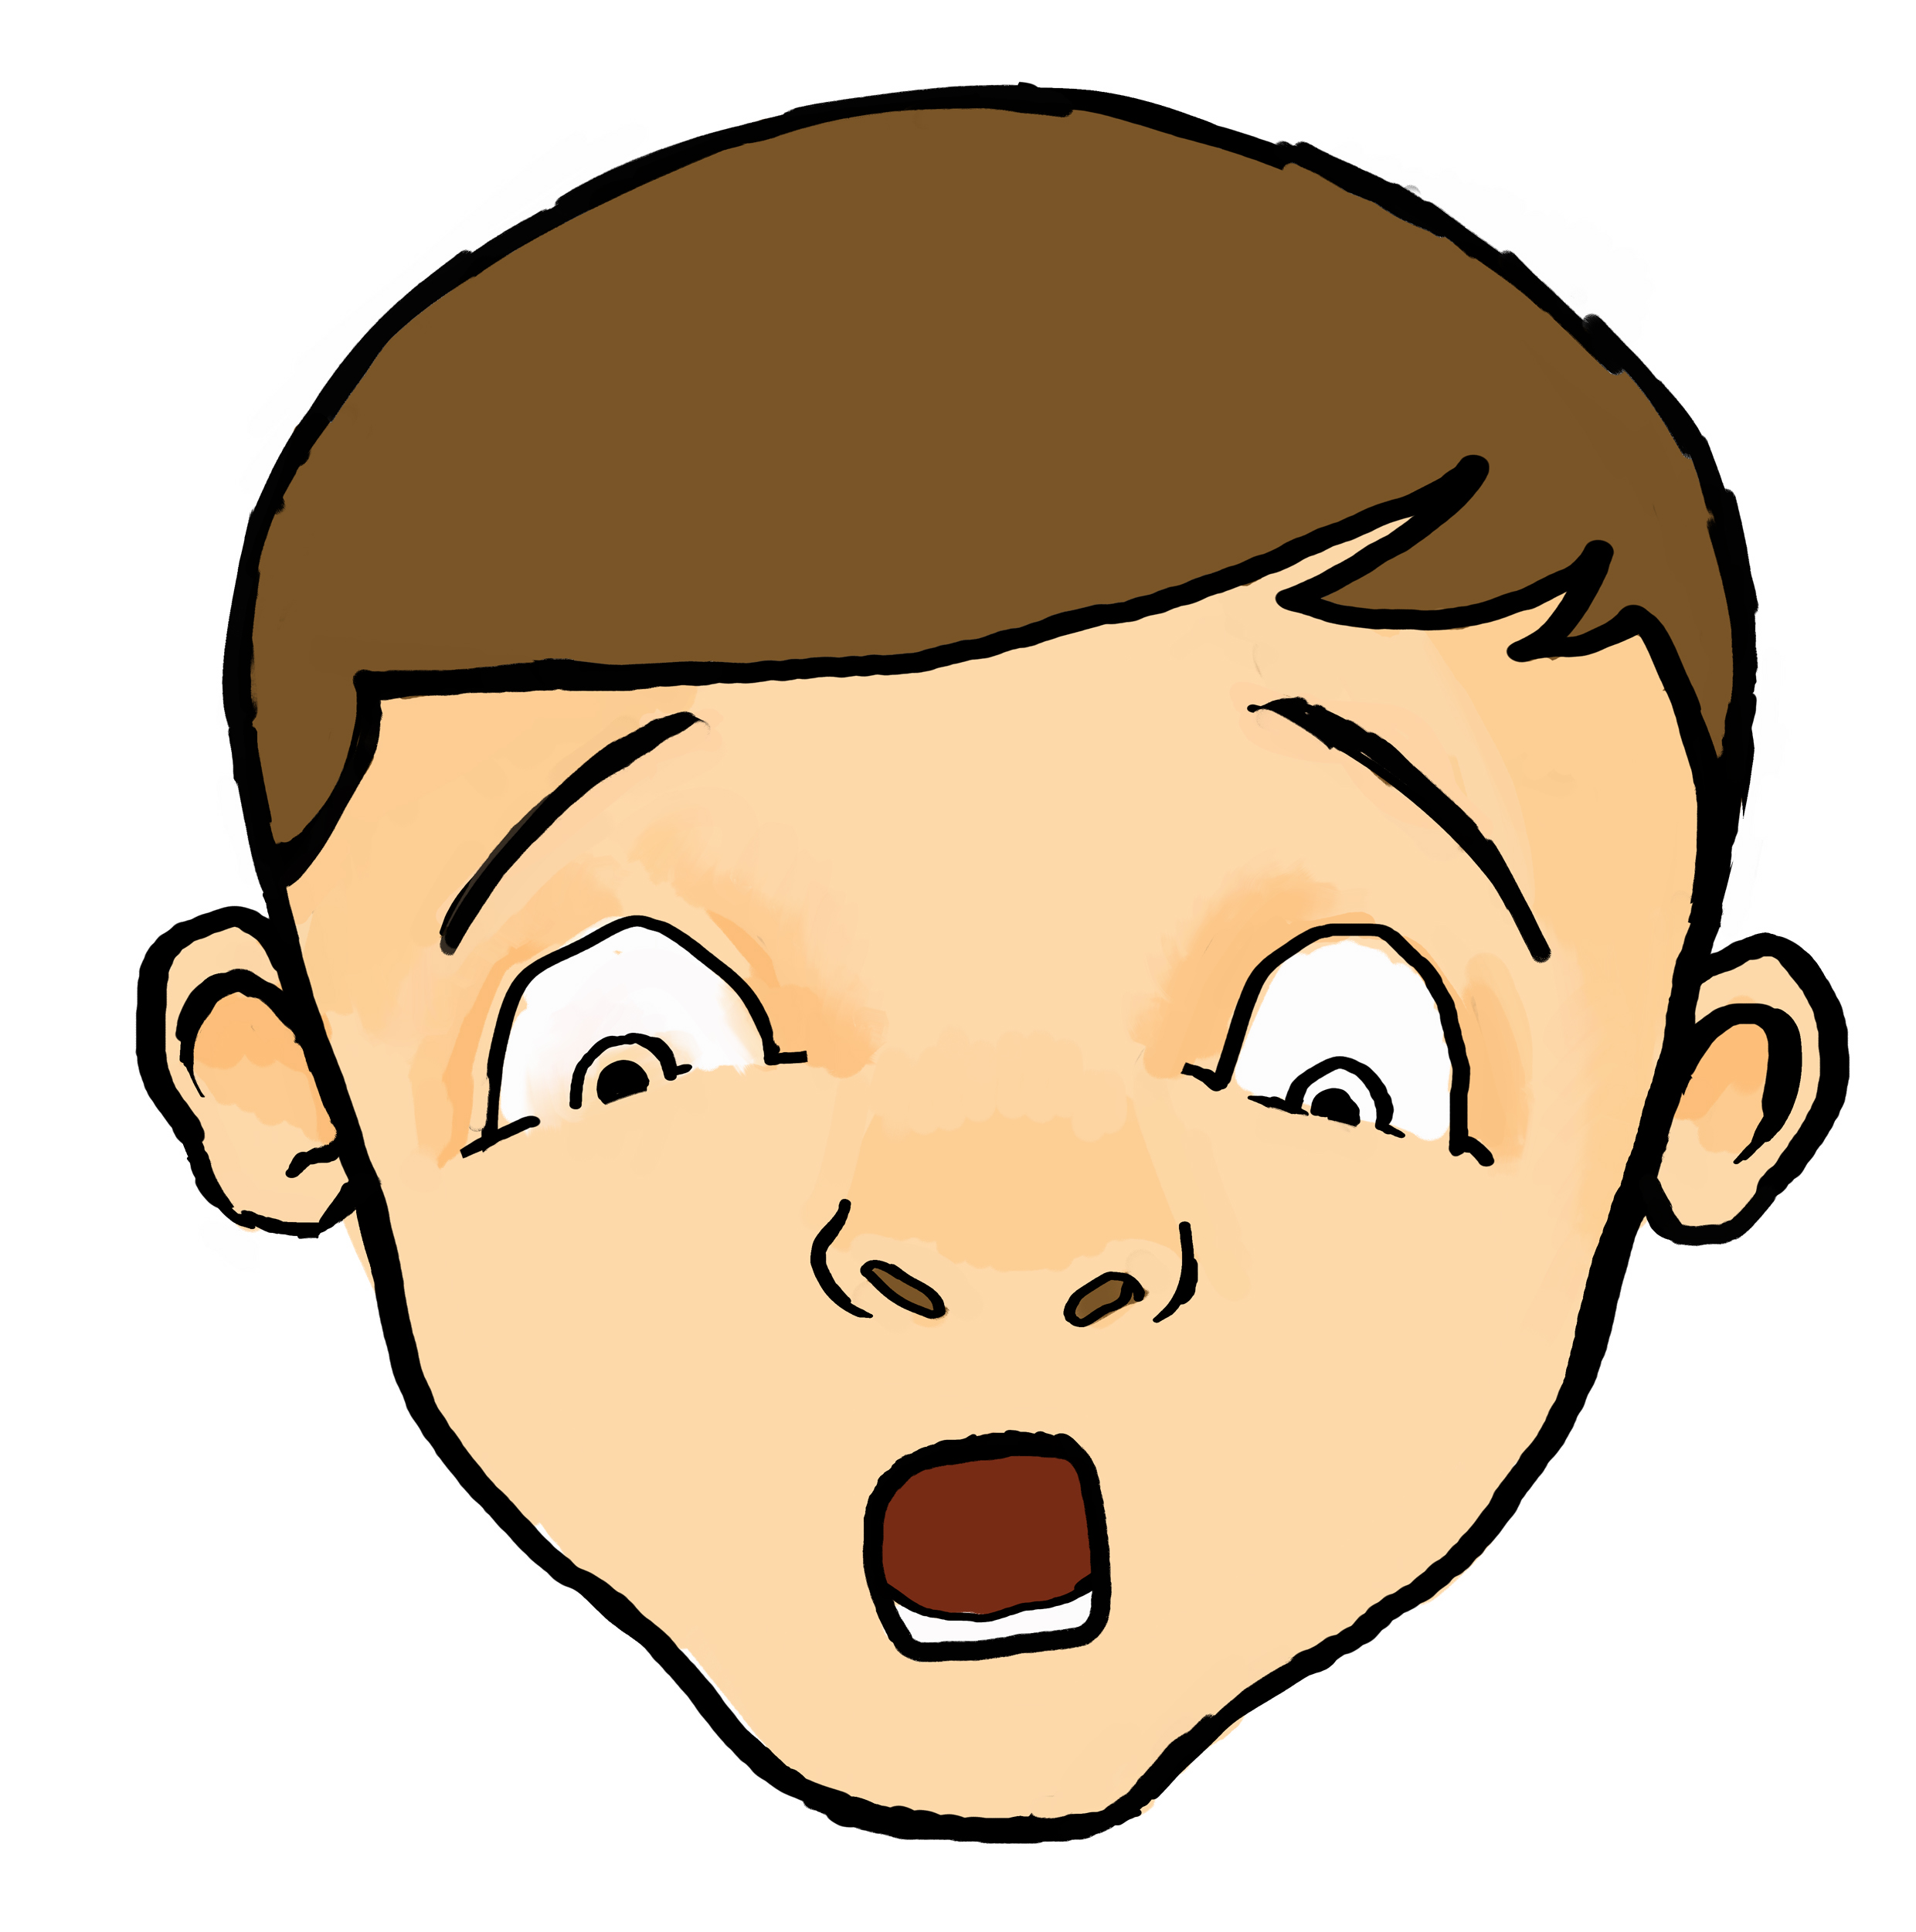 ... Scared Face Clipart - clipartall ...